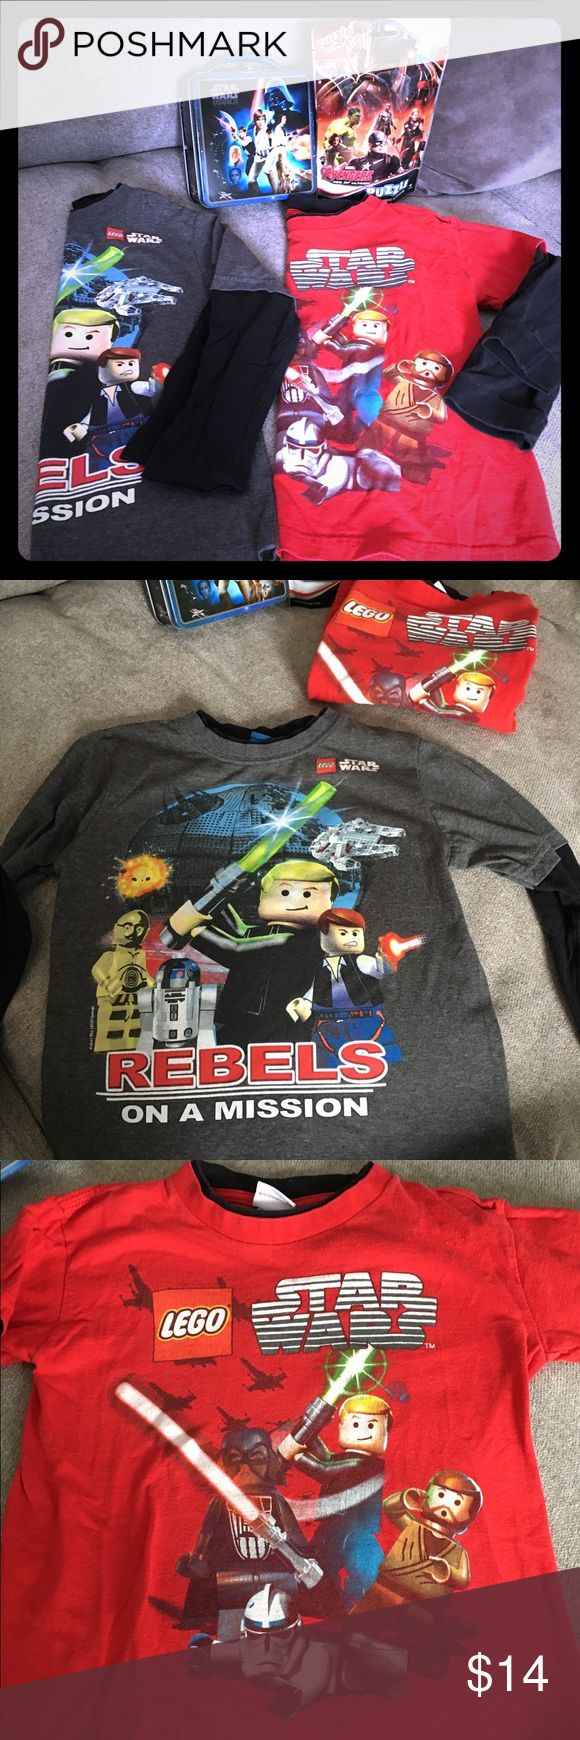 "⭐️ Star Wars bundle⭐️ plus an Avengers puzzle Two long sleeved Star Wars tees size 5/6. Good condition however see last picture. Just noticed one of the cuffs has come unraveled, could easily be stitched up though. One carry all Star Wars tin 5.75x2.5x5.75"" and a 100 piece Avengers puzzle Star Wars Shirts & Tops Tees - Long Sleeve"